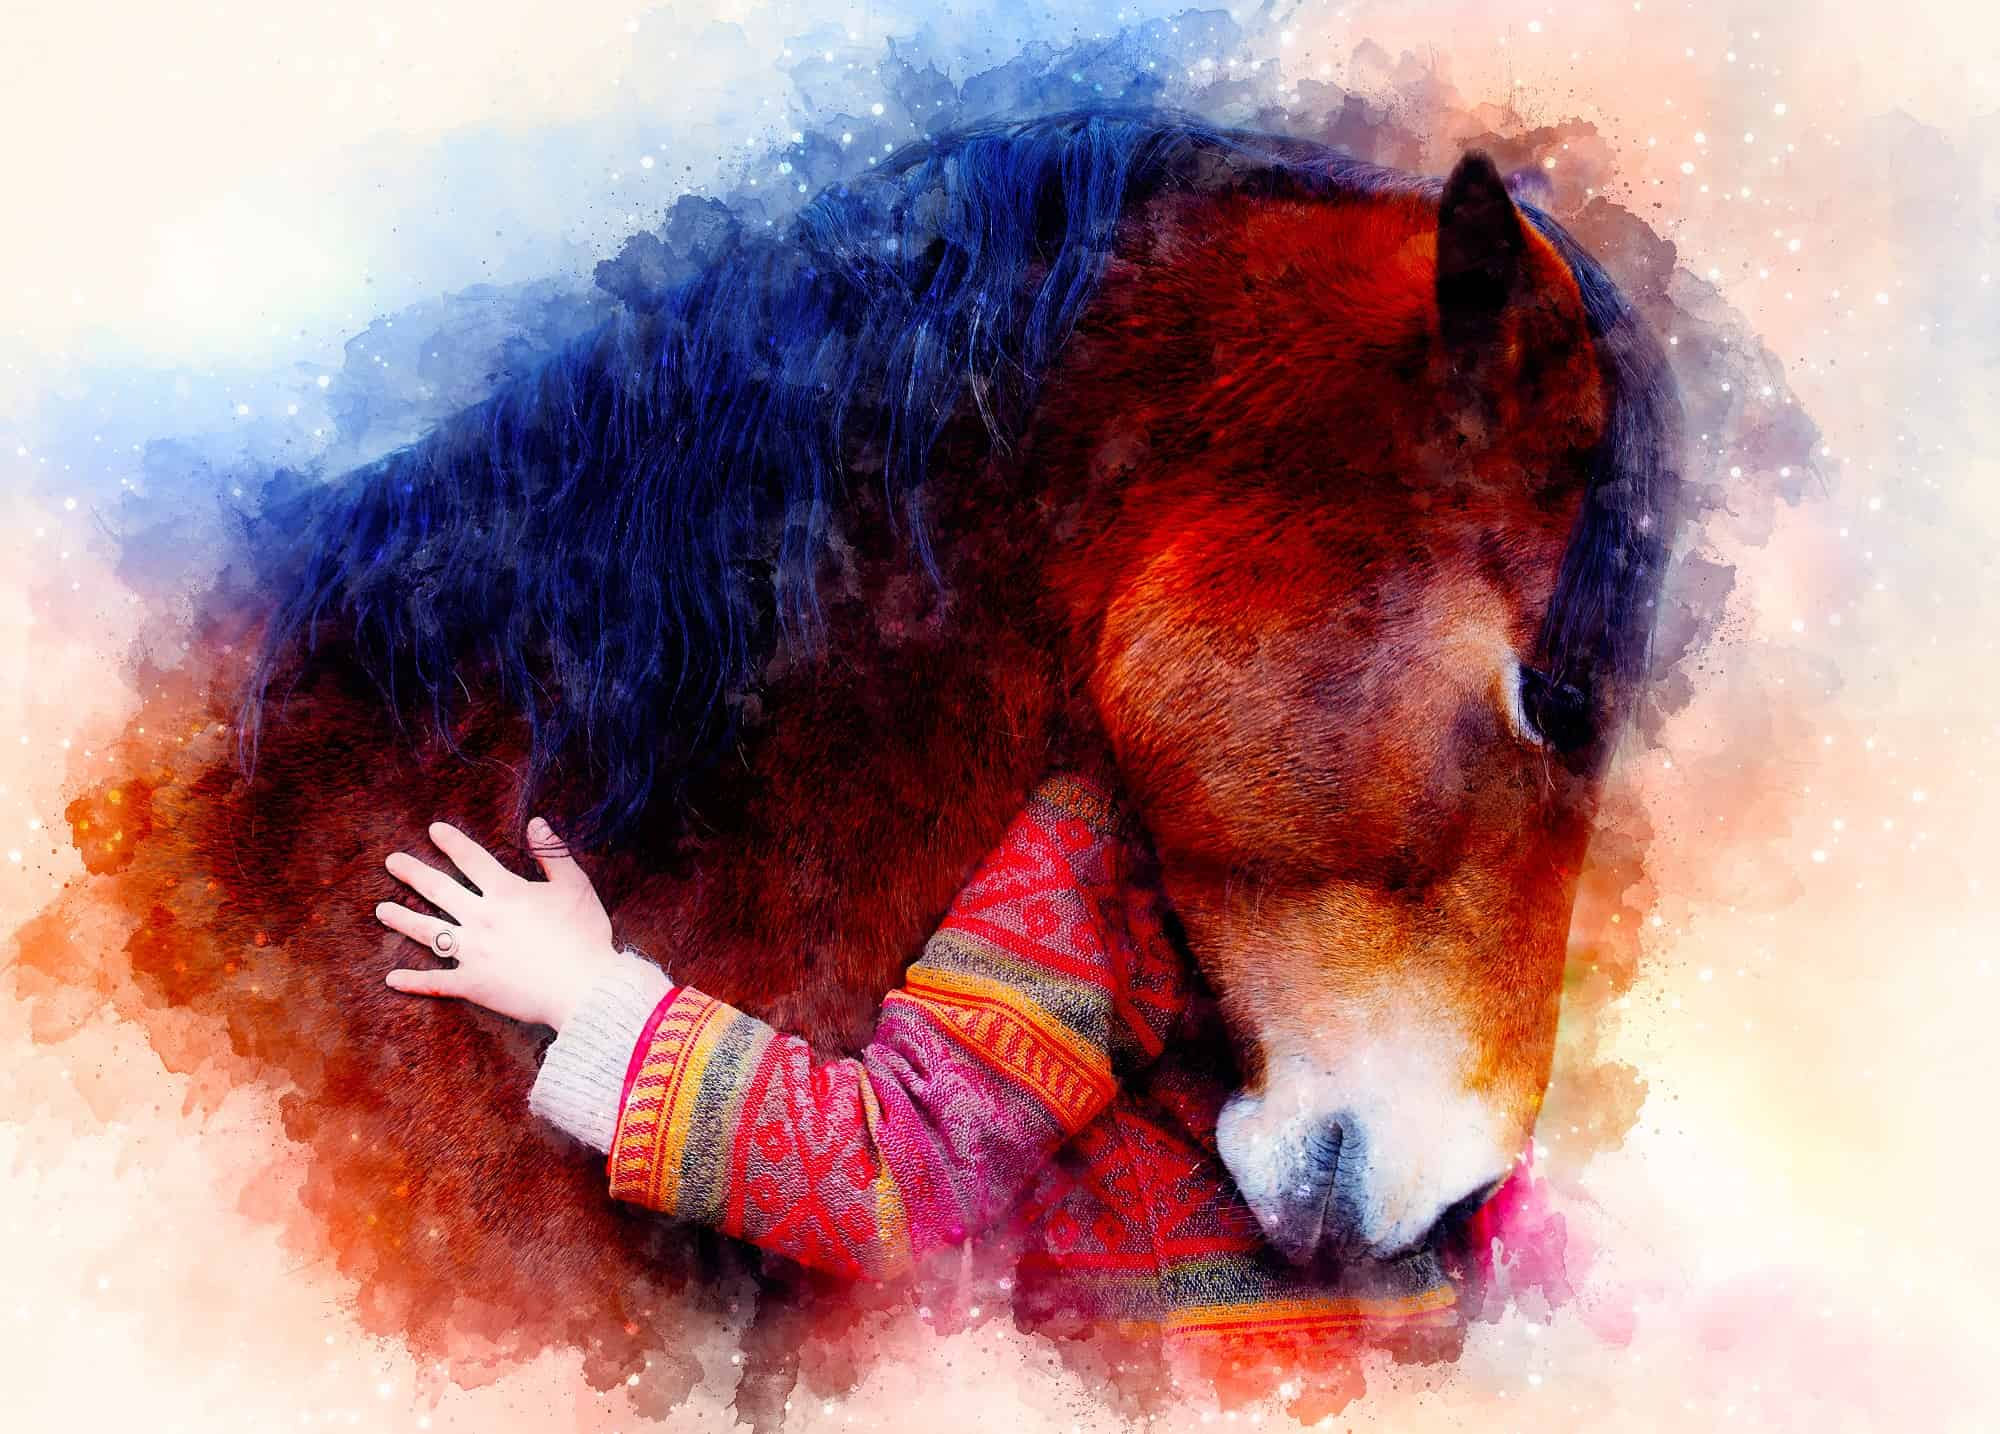 Spiritual Meanings of the Horse